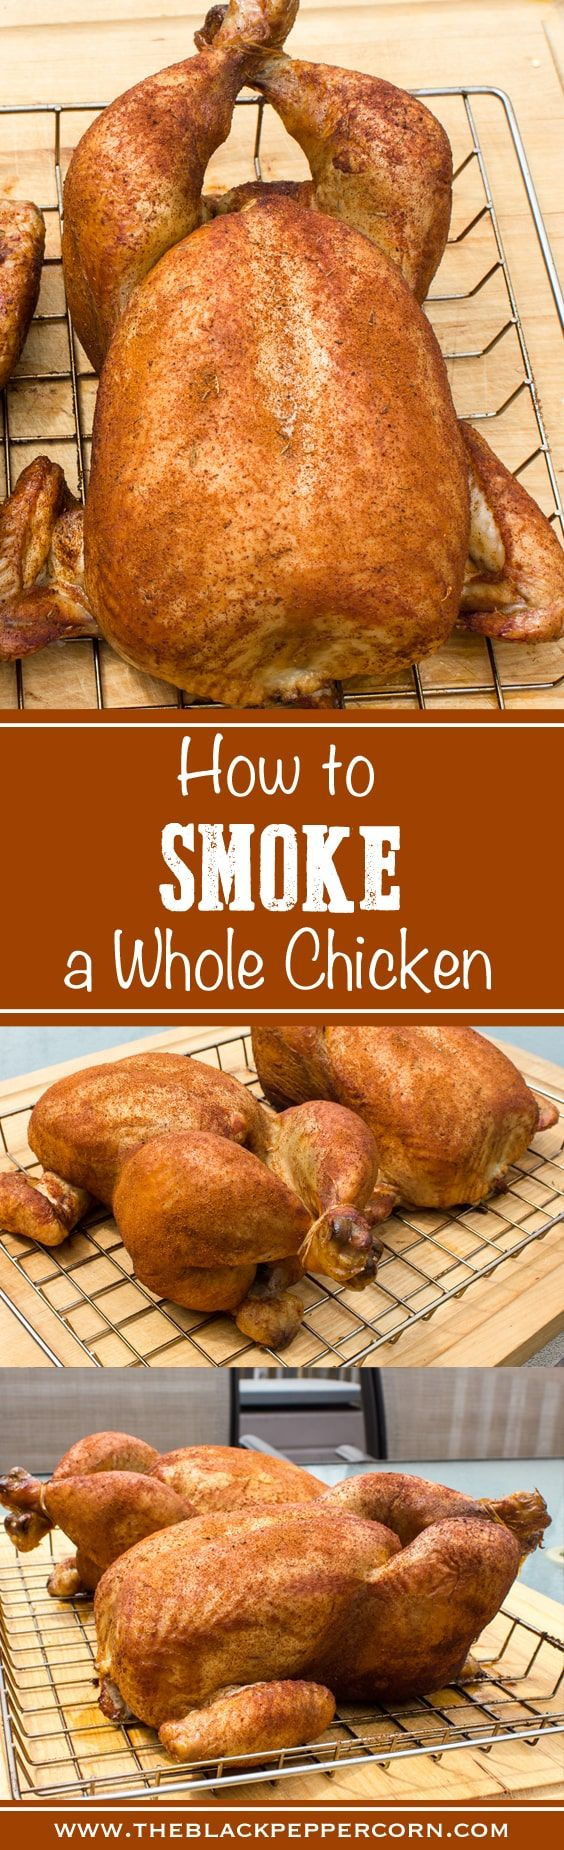 How to Smoke a Whole Chicken - in the Bradley Electric Smoker